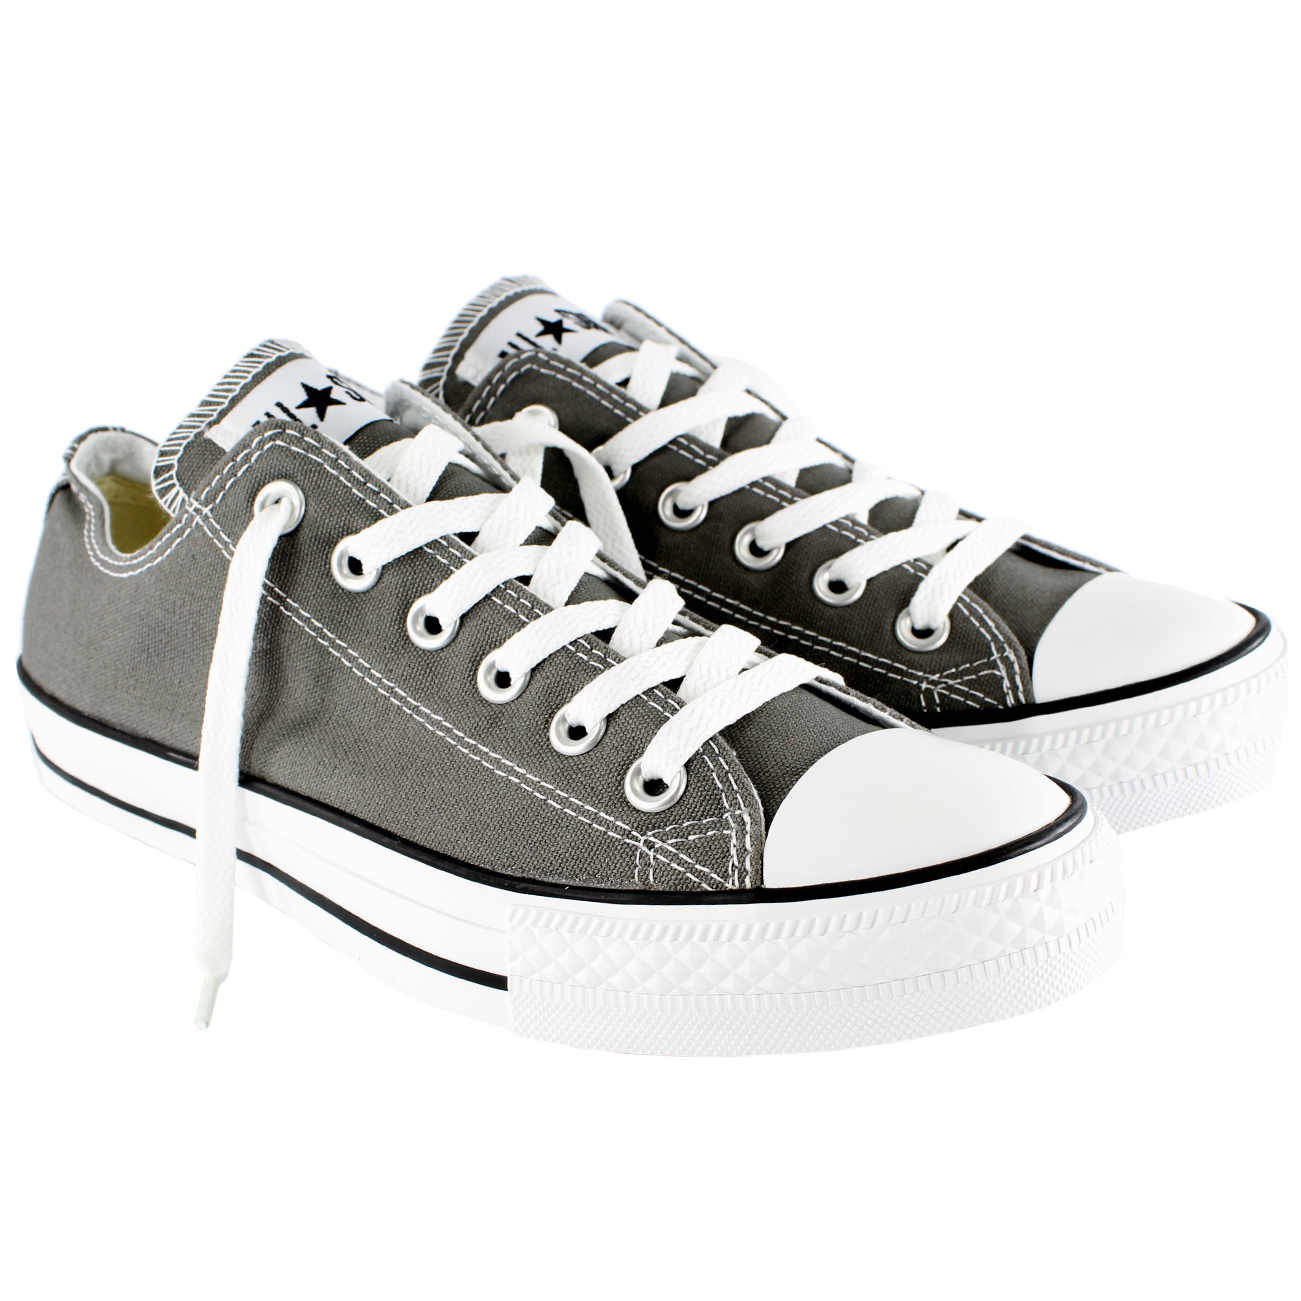 womens converse all star ox low chuck taylor chucks sneaker trainer uk sizes 3 9 ebay. Black Bedroom Furniture Sets. Home Design Ideas